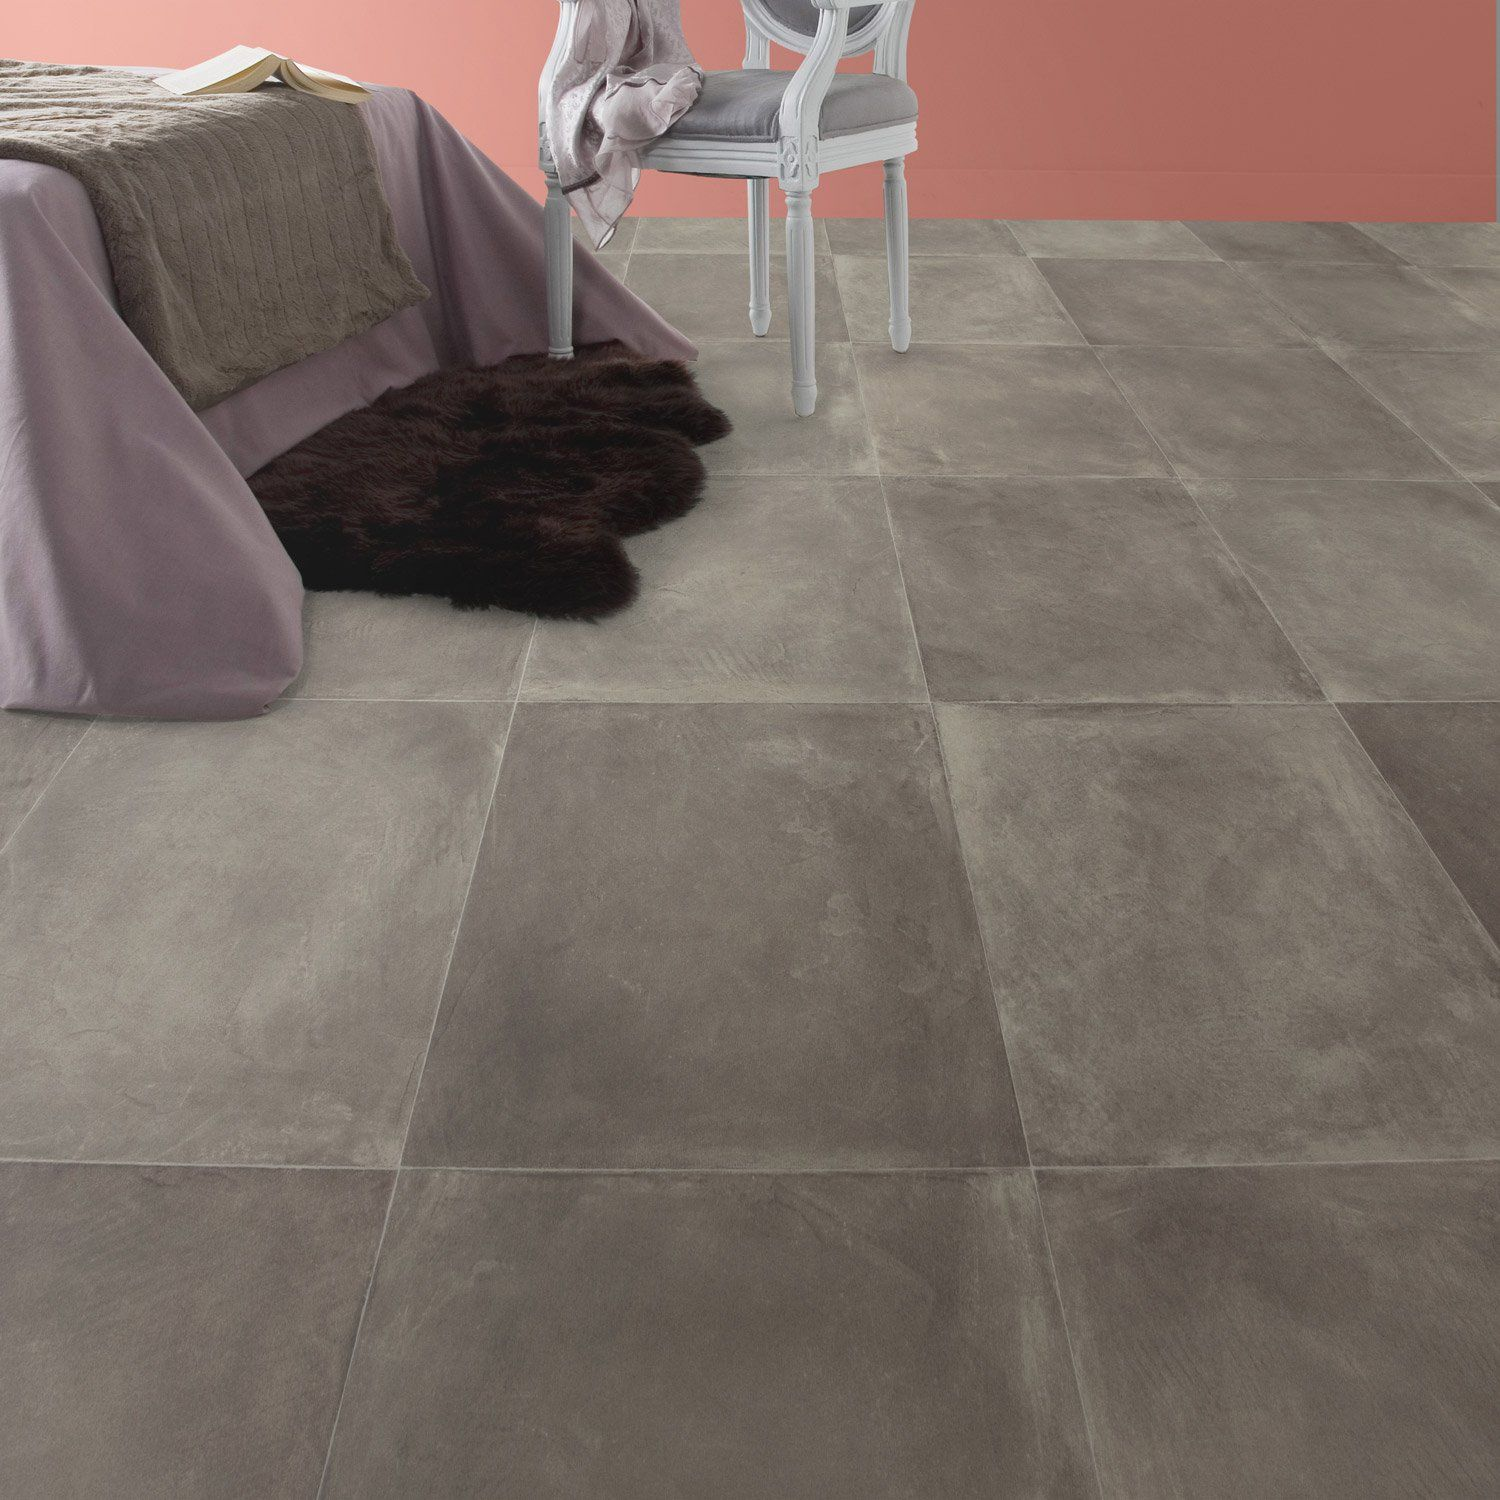 Coupe Parquet Leroy Merlin Sol Vinyle Aerotex Middle Grey Coupe 4 M Leroy Merlin Sejour